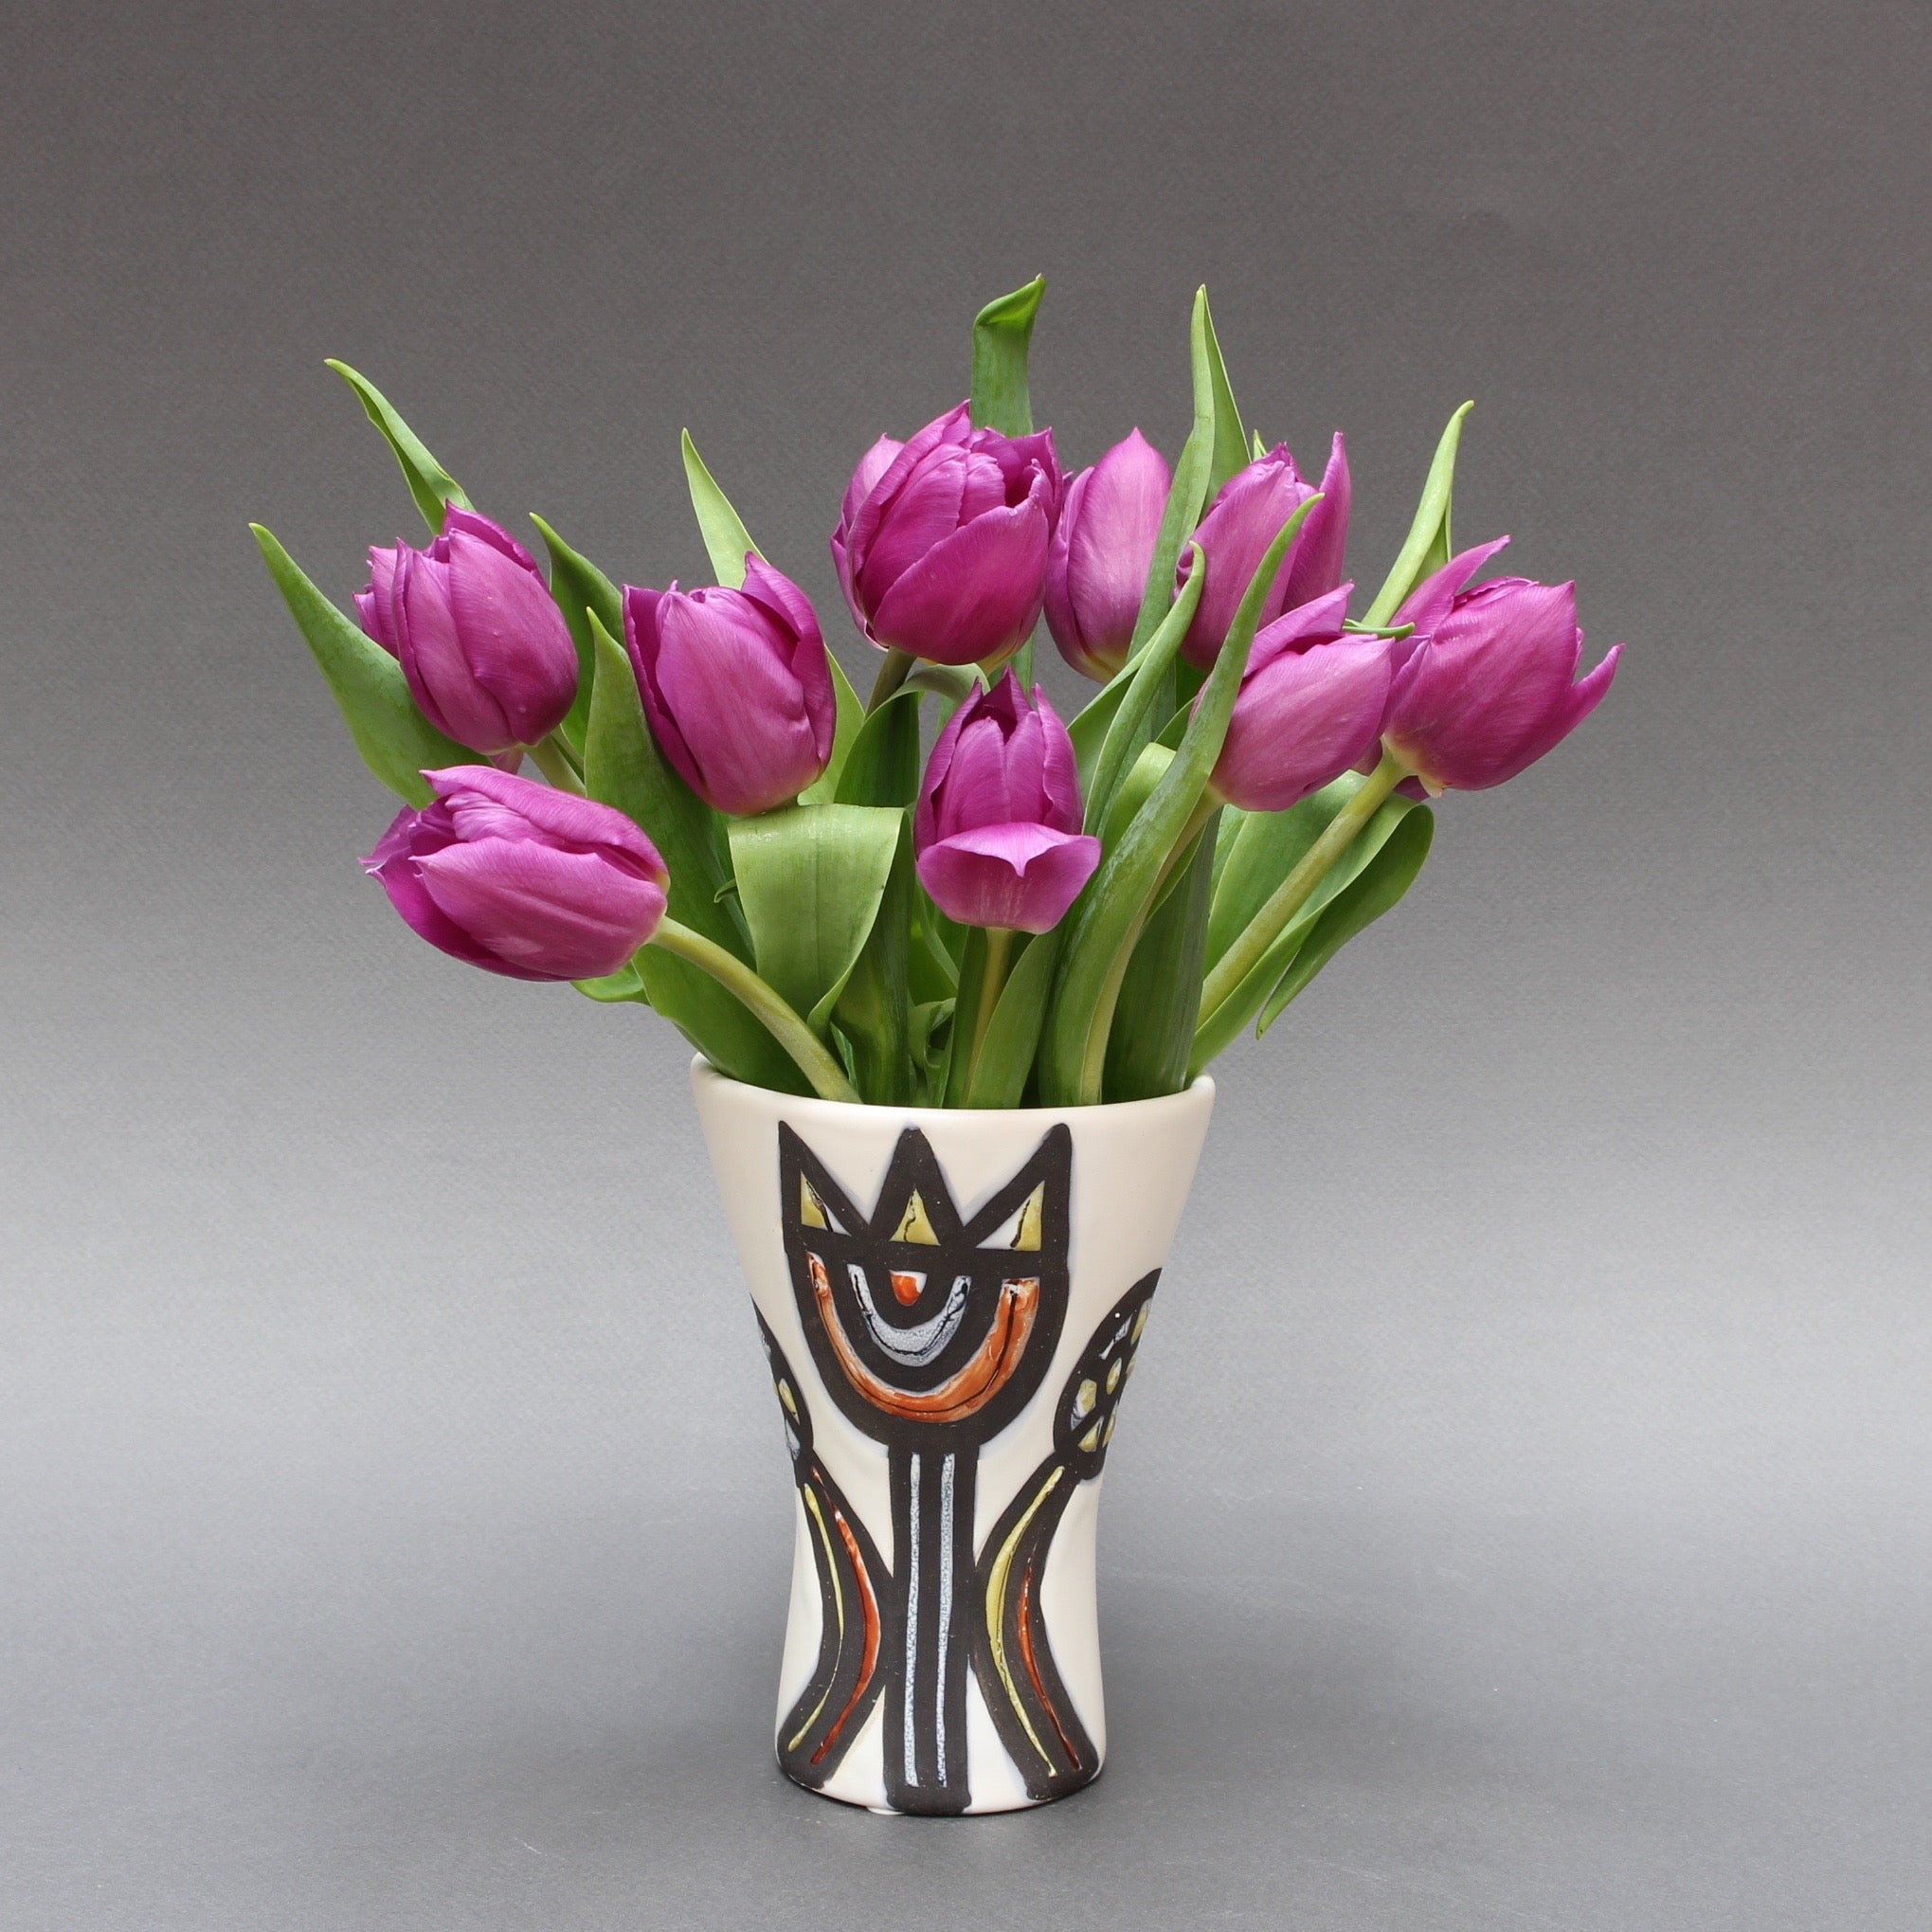 Vase with Tulips by Roger Capron (1950s)